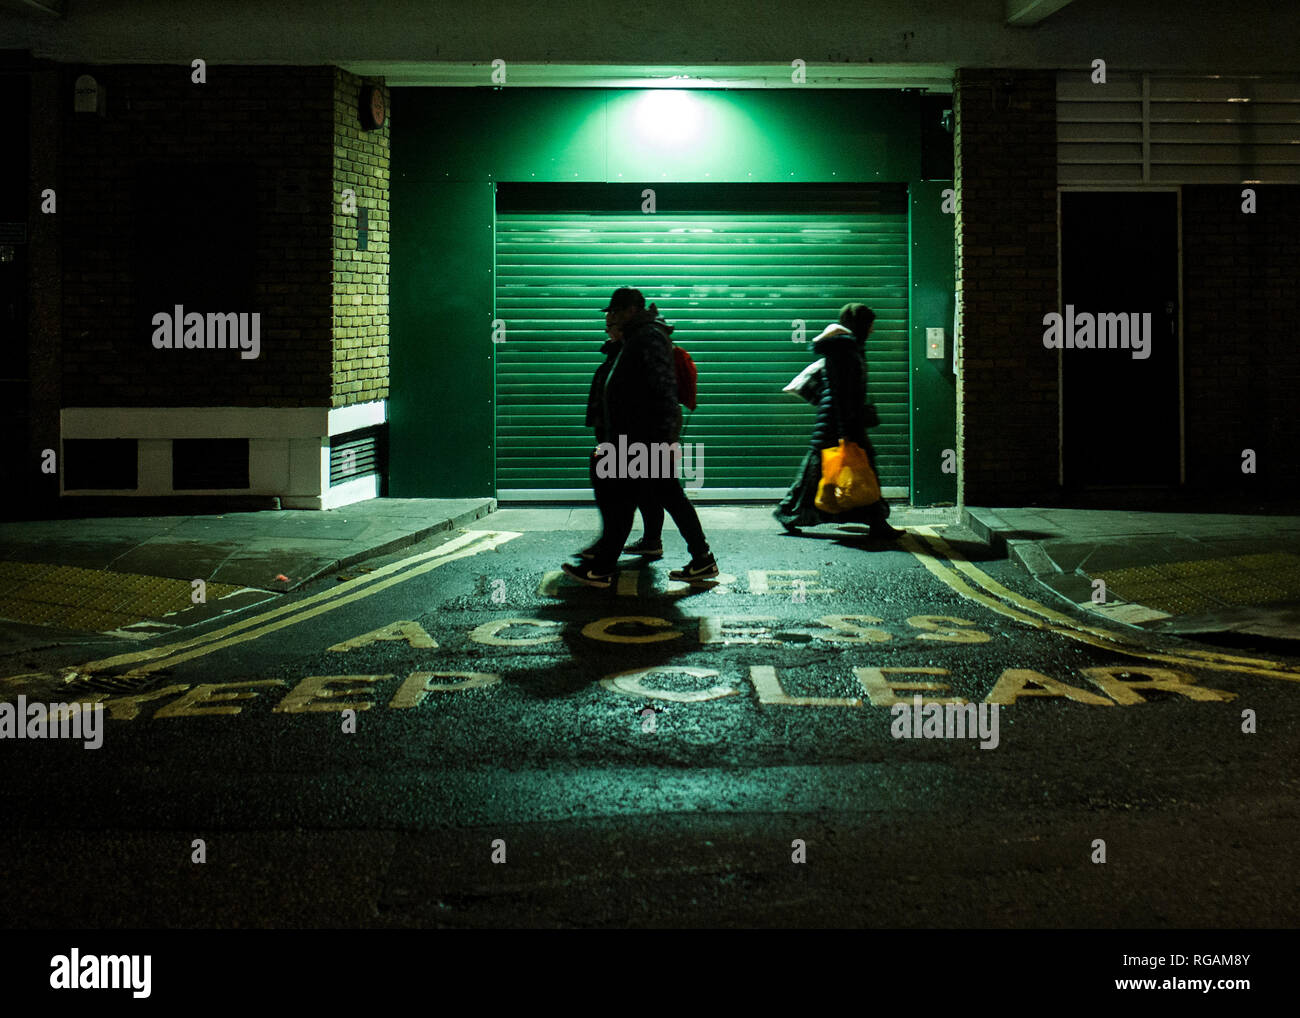 fire access keep clear, sinageon road infront of green steel roller shutter garage door Stock Photo